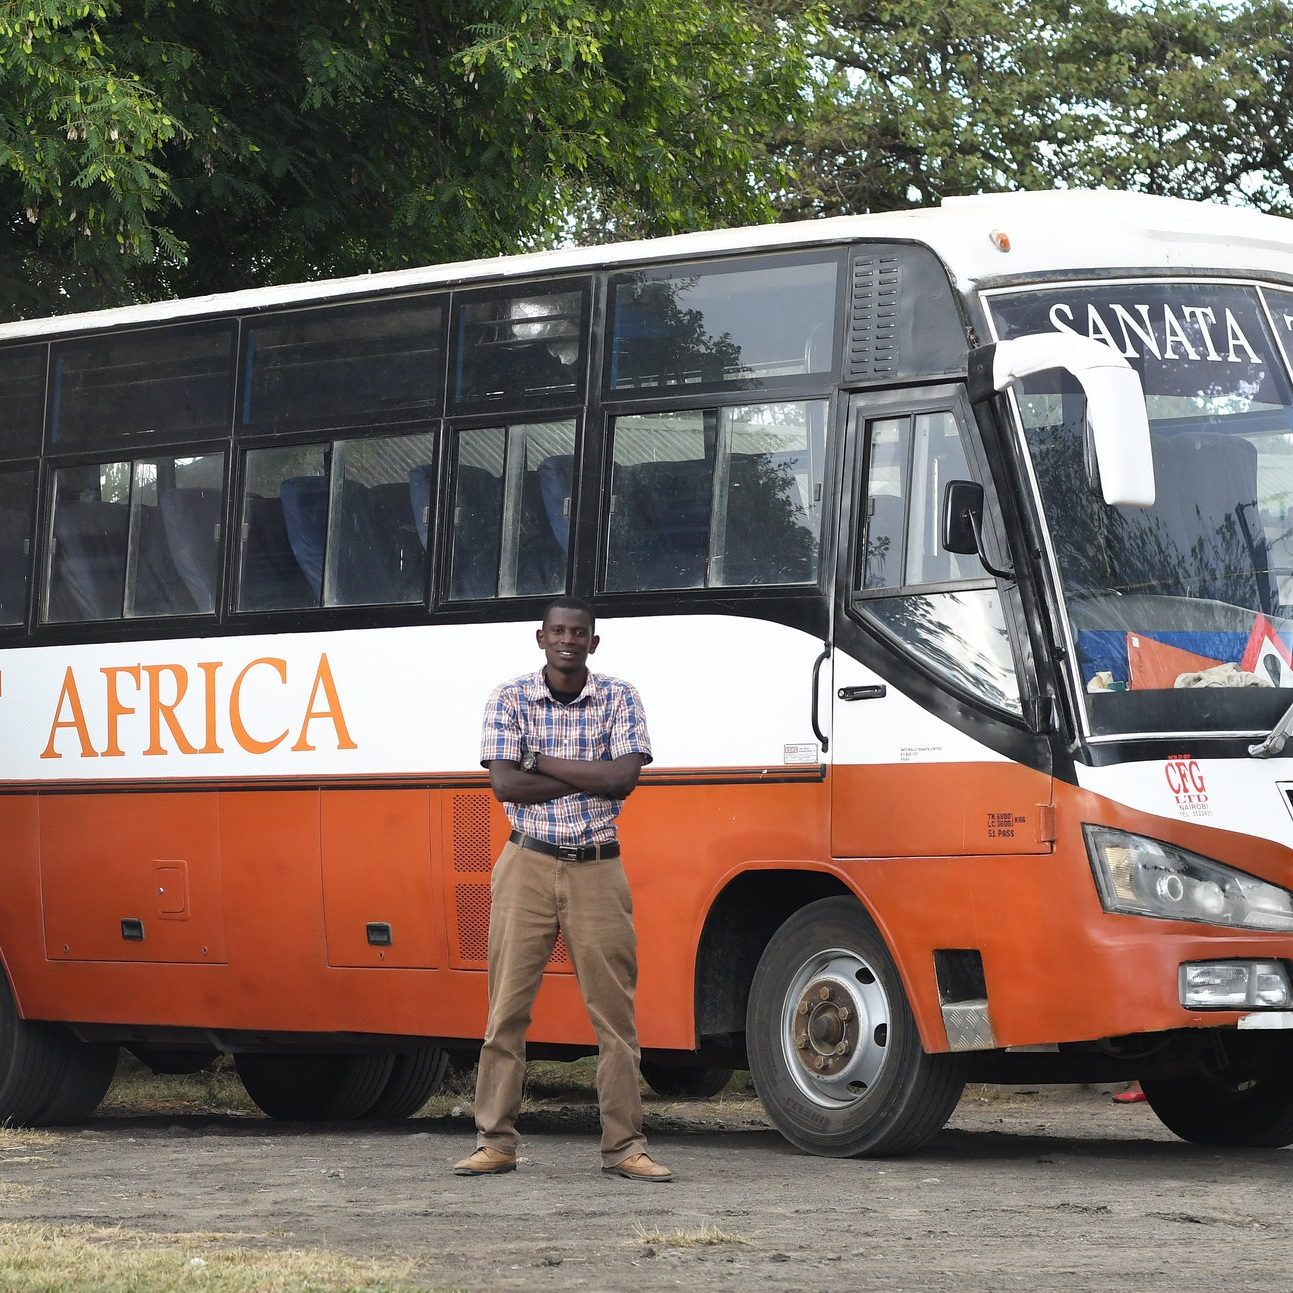 Vincent - Vincent is the Restart driver and takes the children to school and on other trips in the Restart Africa bus. He is a keen footballer and trains with the children in his spare time.